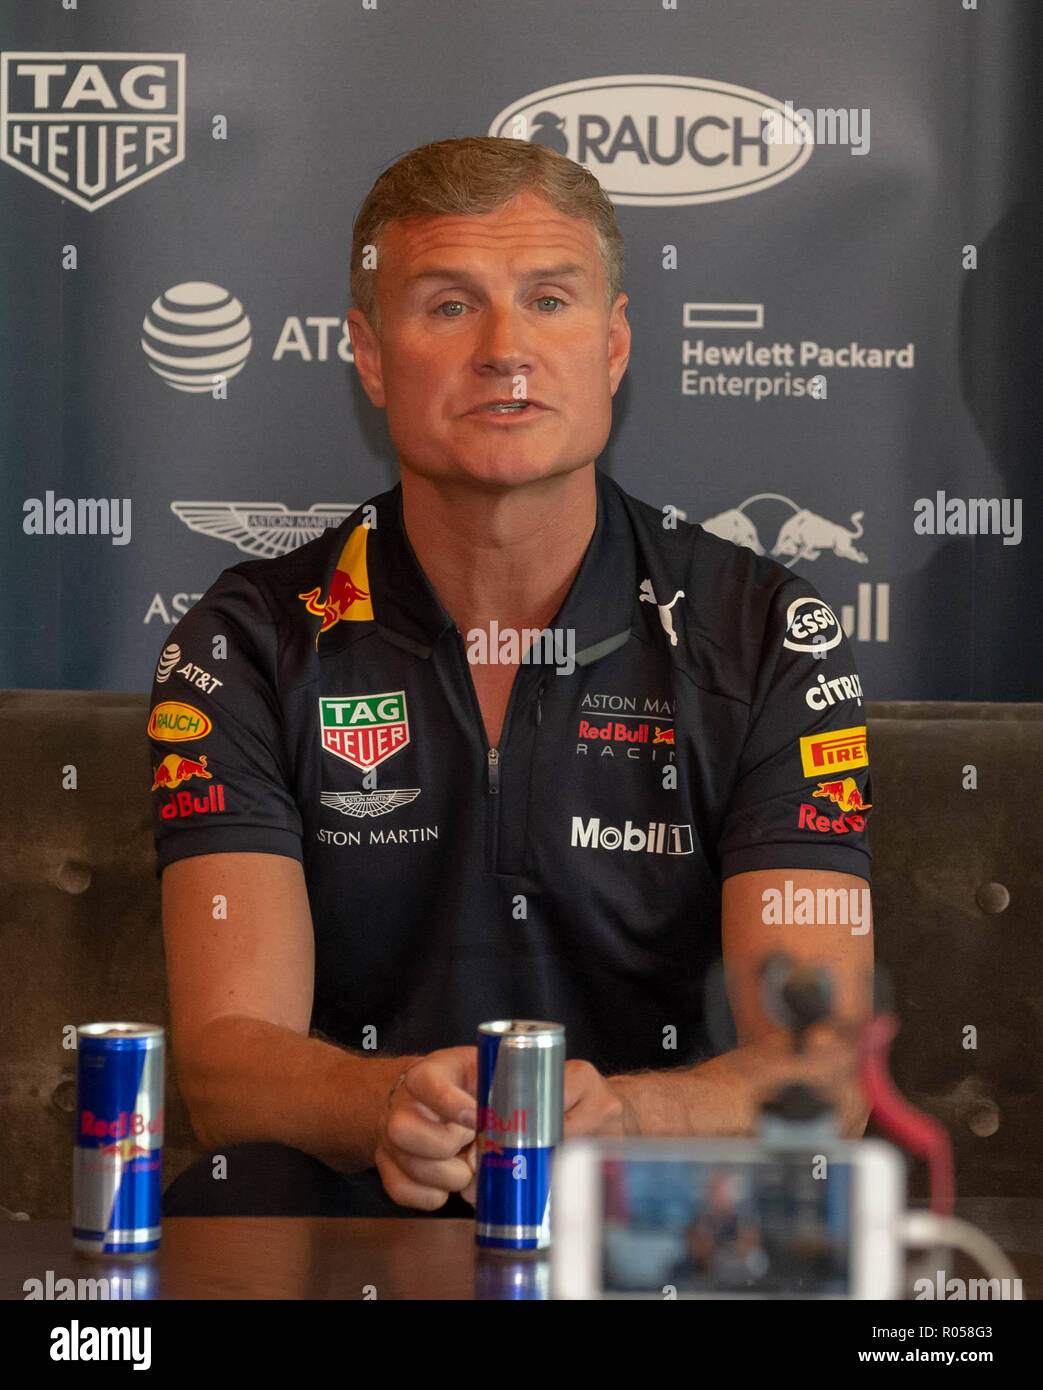 Belfast, Northern Ireland, U.K. 02 November 2018. Press Conference with Red Bull F1 Showrun Driver David Coulthard ahead of the Red Bull Racing Team's Showrun in Belfast City Centre on Saturday. Credit: John Rymer/Alamy Live News - Stock Image